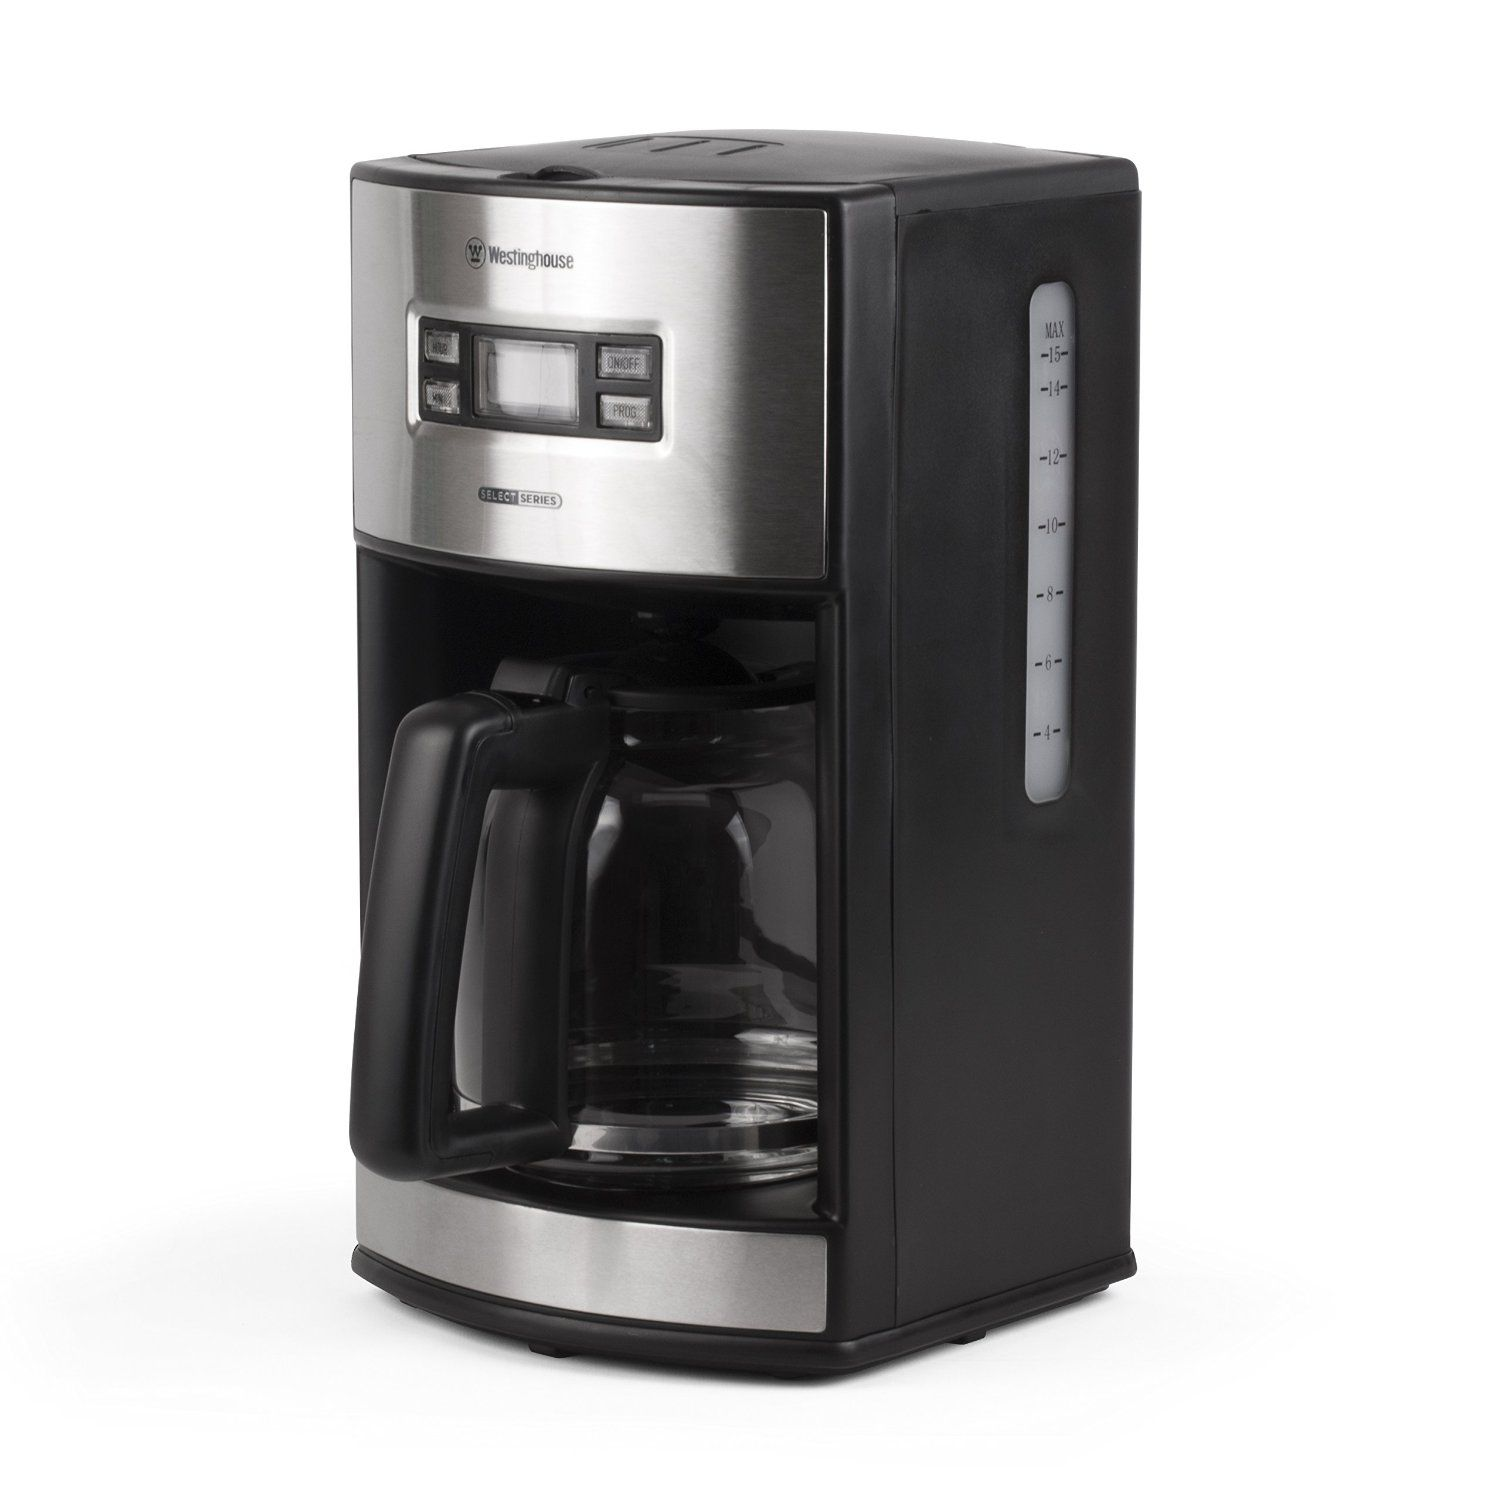 Westinghouse Wcm12bssa Select Series 12 Cup Programmable Coffee Maker Black Amazon Exclusive Don T Ge Best Coffee Maker Coffee Maker Home Coffee Machines